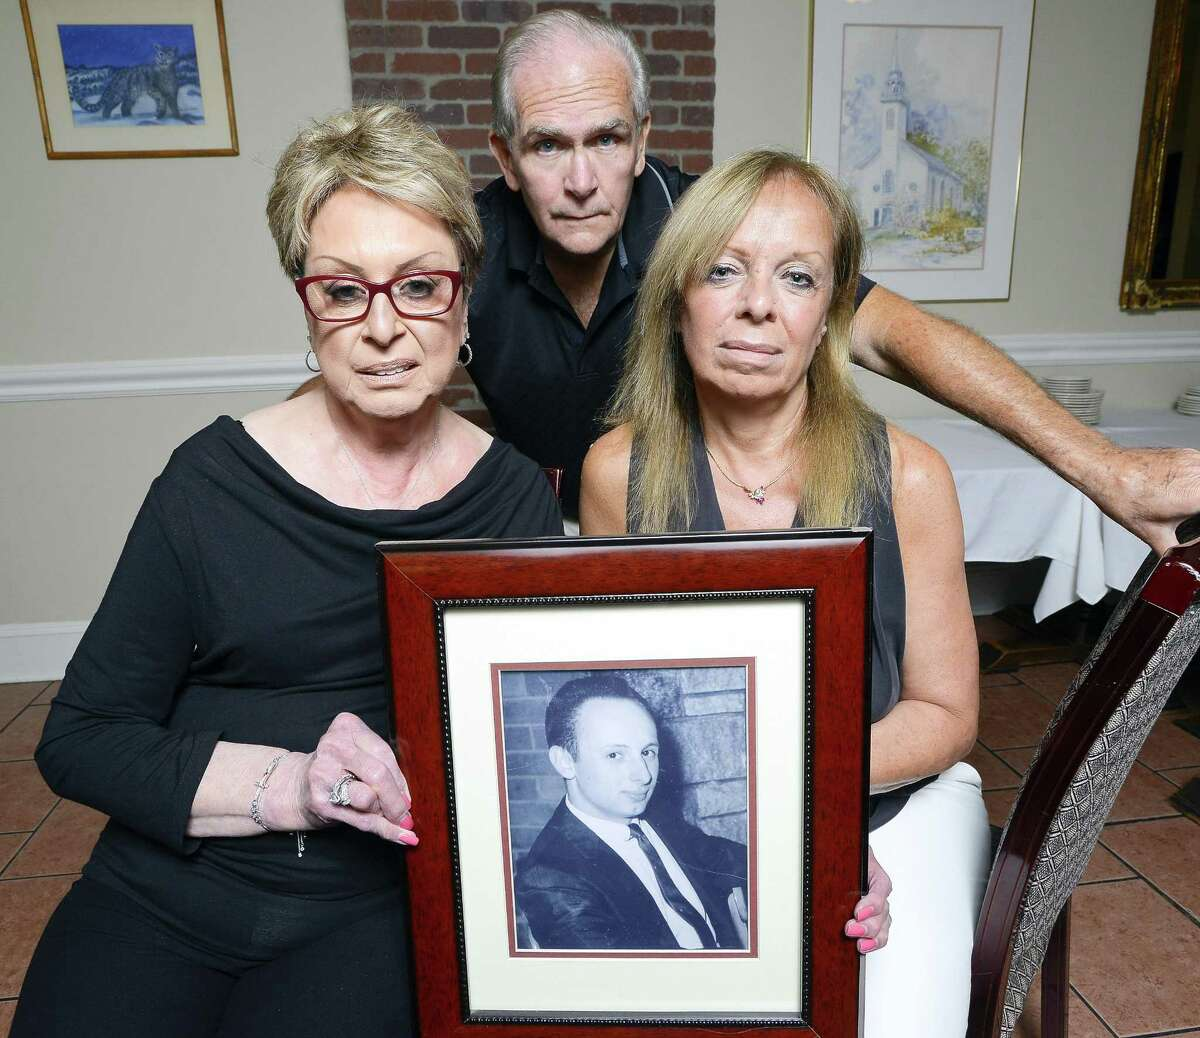 """Toni Lupinacci, Fran Gross, and brother-in-law, Anthony """"Butch"""" Lupinacci are photograph on August 23, 2017 with a portrait of Joe Pellicci at the family's restaurant on Stamford's Westside. Pellicci, shown in a portrait photograph taken around 1961 that hangs in the entrance way of Pellicci's Restaurant, was killed in 1973 in one of Stamford's most notorious murders, that remains still unsolved. They hope a soon-to-be-made TV show about the cold case prompts Stamford police to reopen it."""